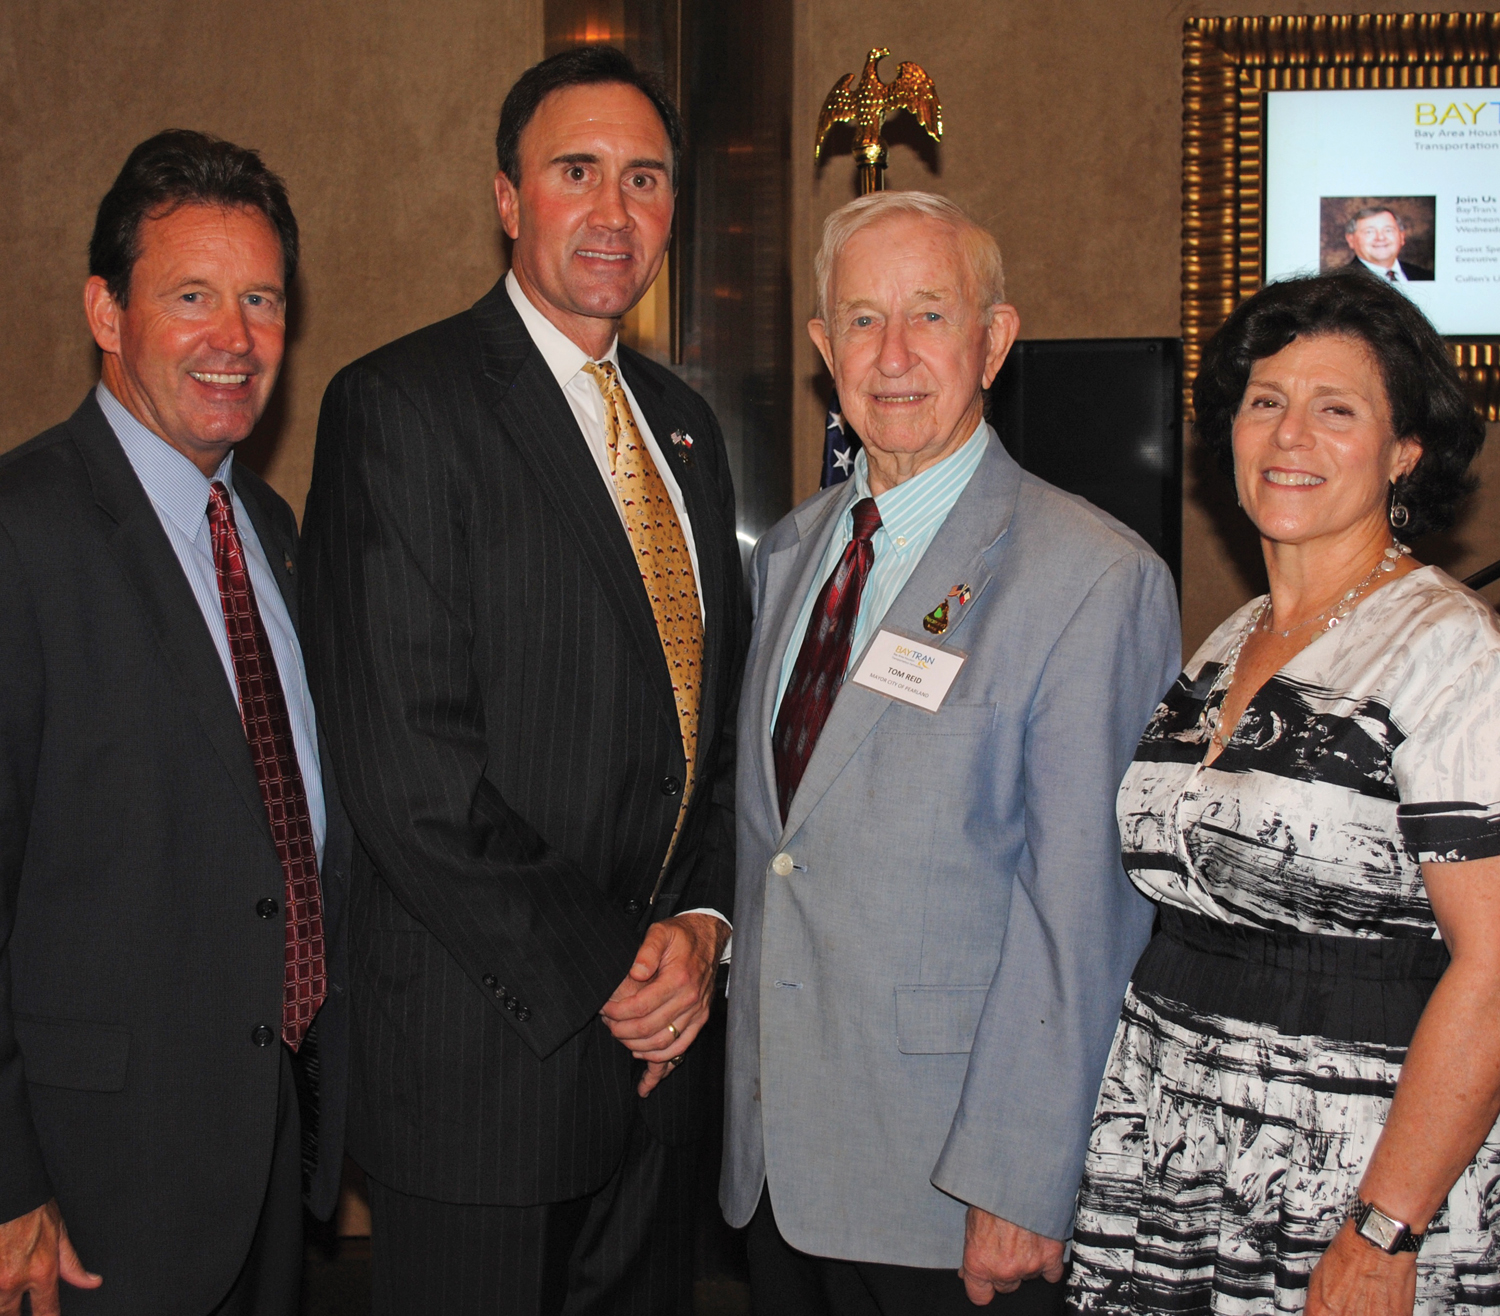 Congressman Pete Olson, second from left, stops for a photo with, from left, Pearland Deputy City Manager Jon Branson and Mayor Tom Reid, plus Bay Area Houston Transportation Partnership President Barbara Koslov, after speaking at the BayTran monthly luncheon.